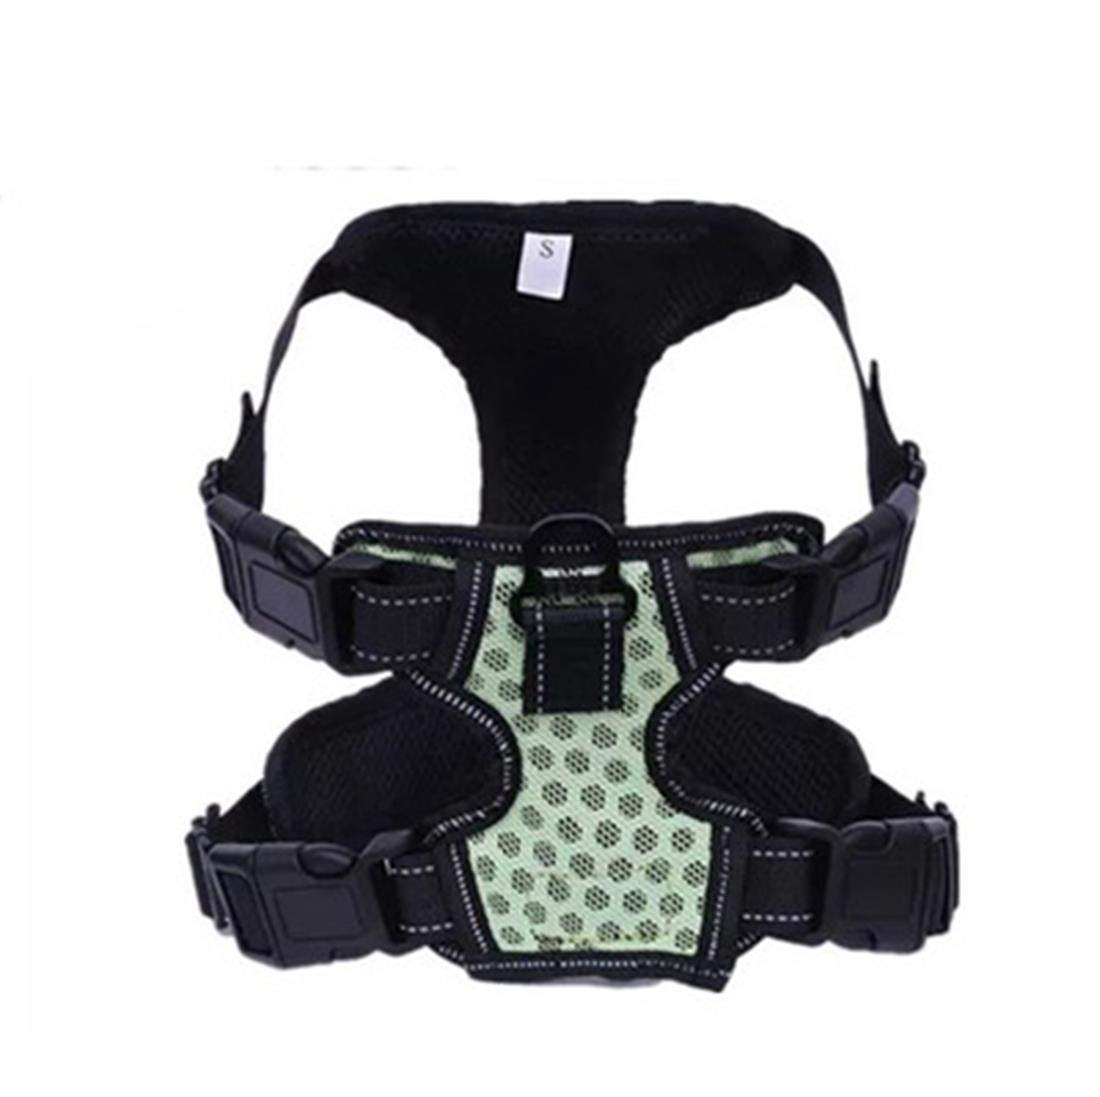 Green Medium Green Medium Pet Dogs No Pull Reflective Harness Adjustable, Soft, Breathable, Lightweight Dog Harness for Small, Medium, Large Dogs,Green,M